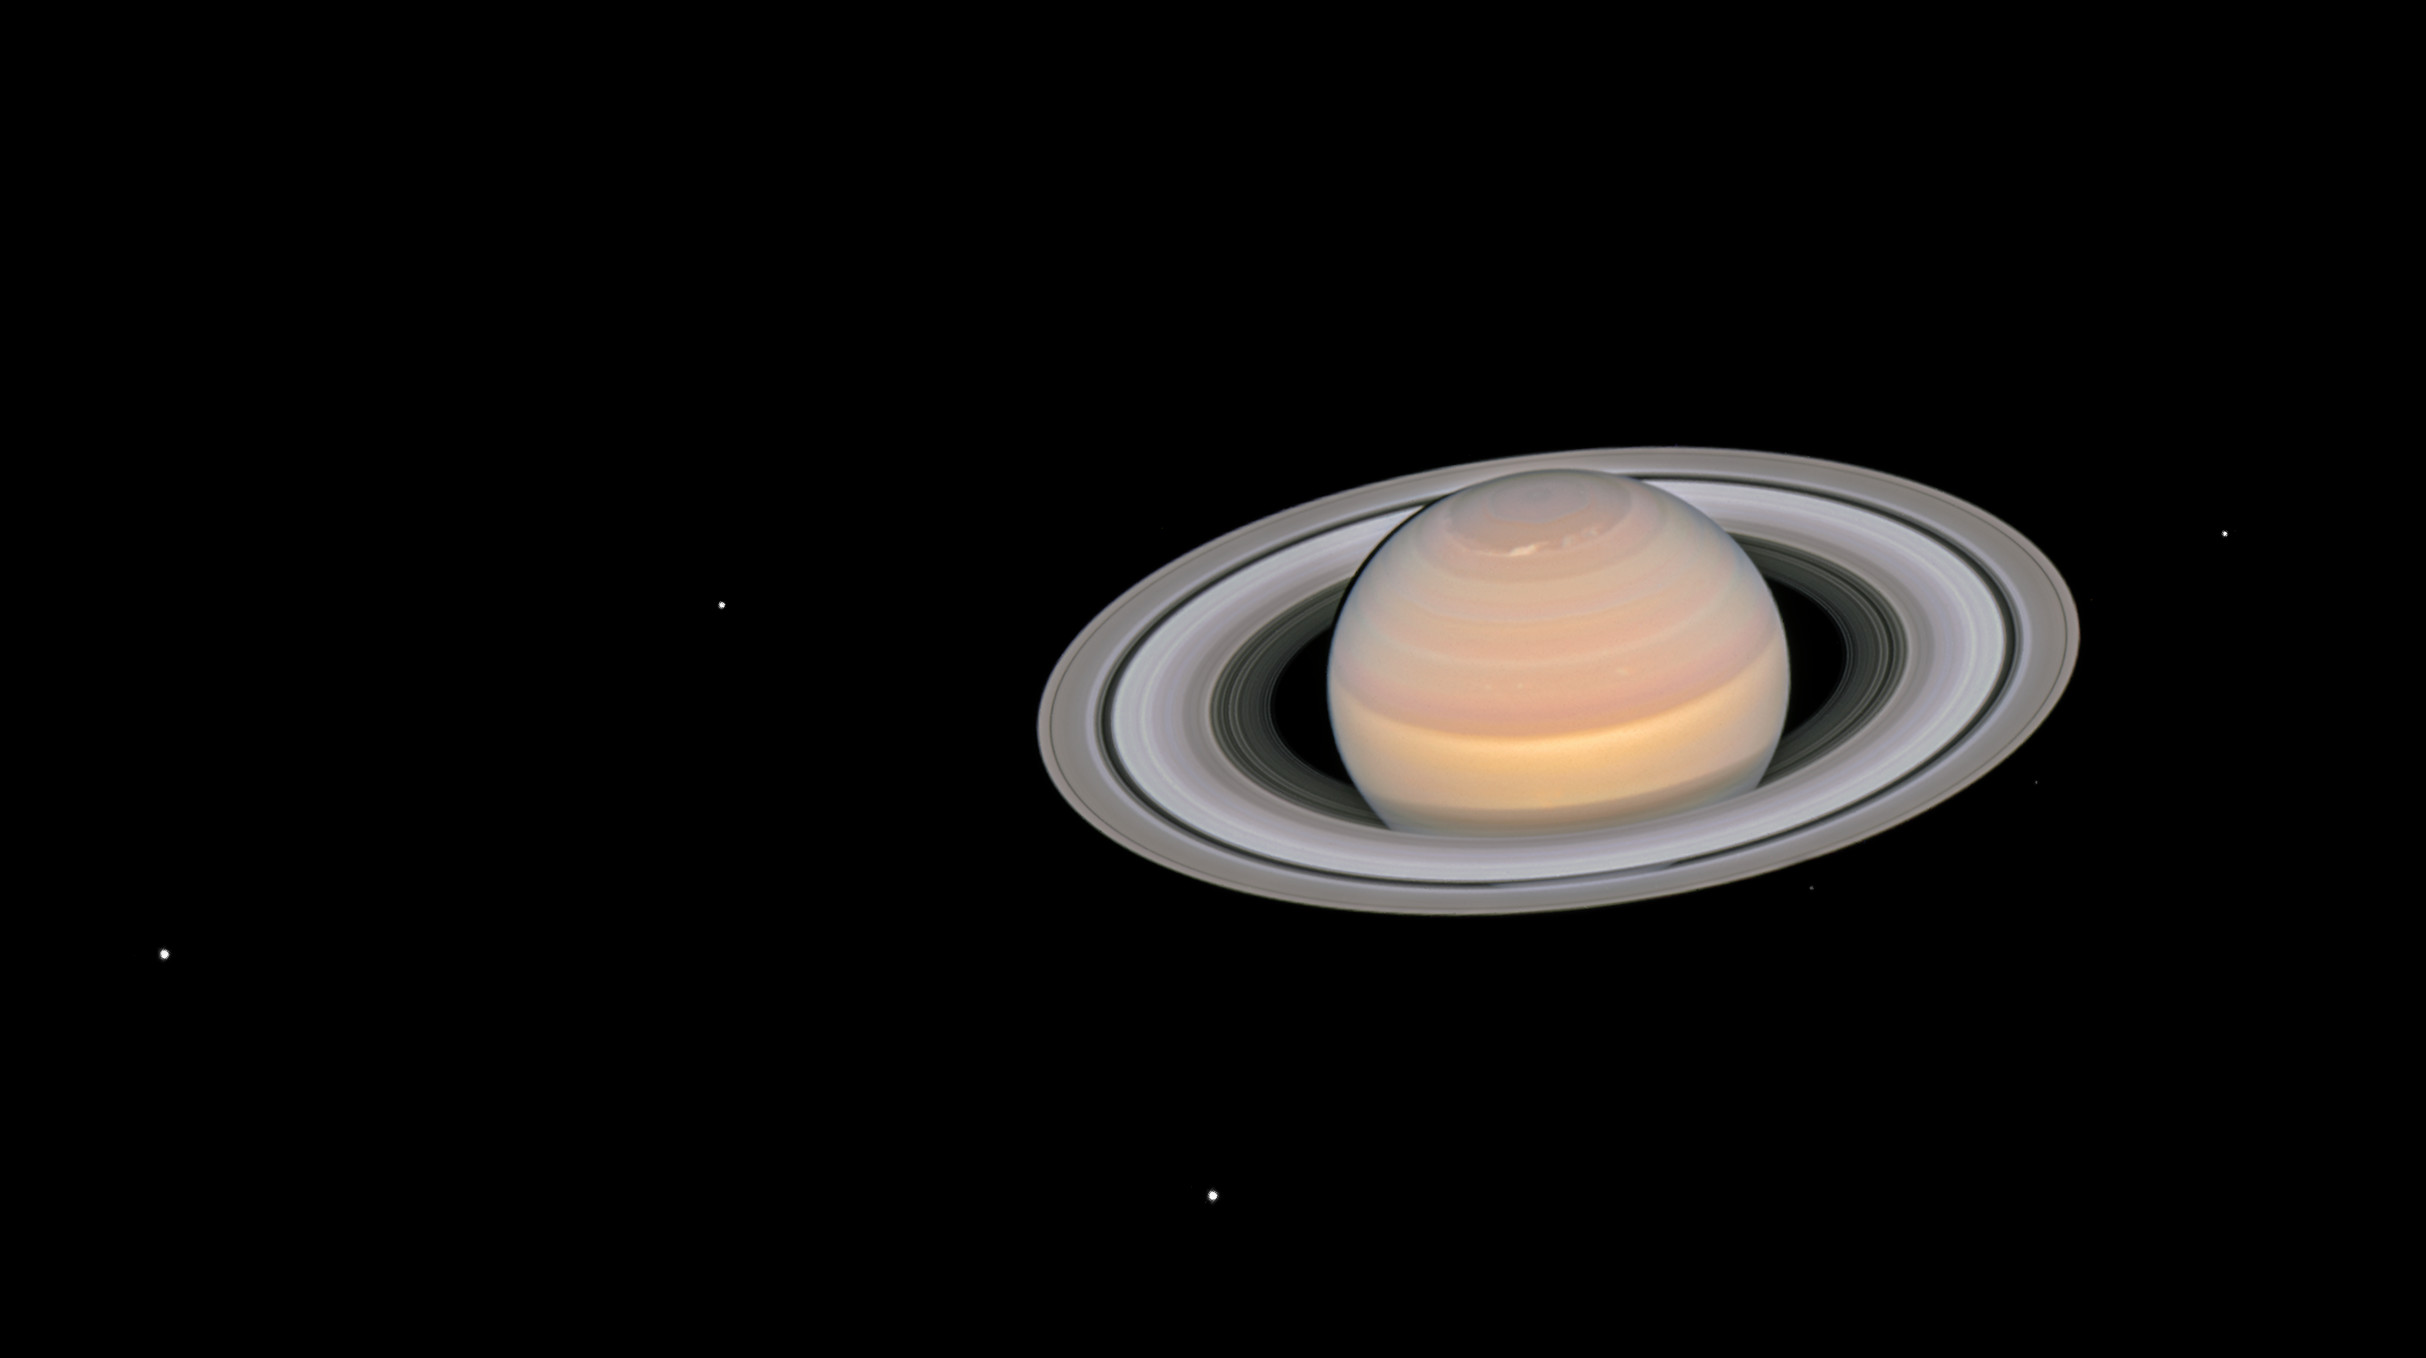 Hubble Space Telescope image of Saturn and several of its moons